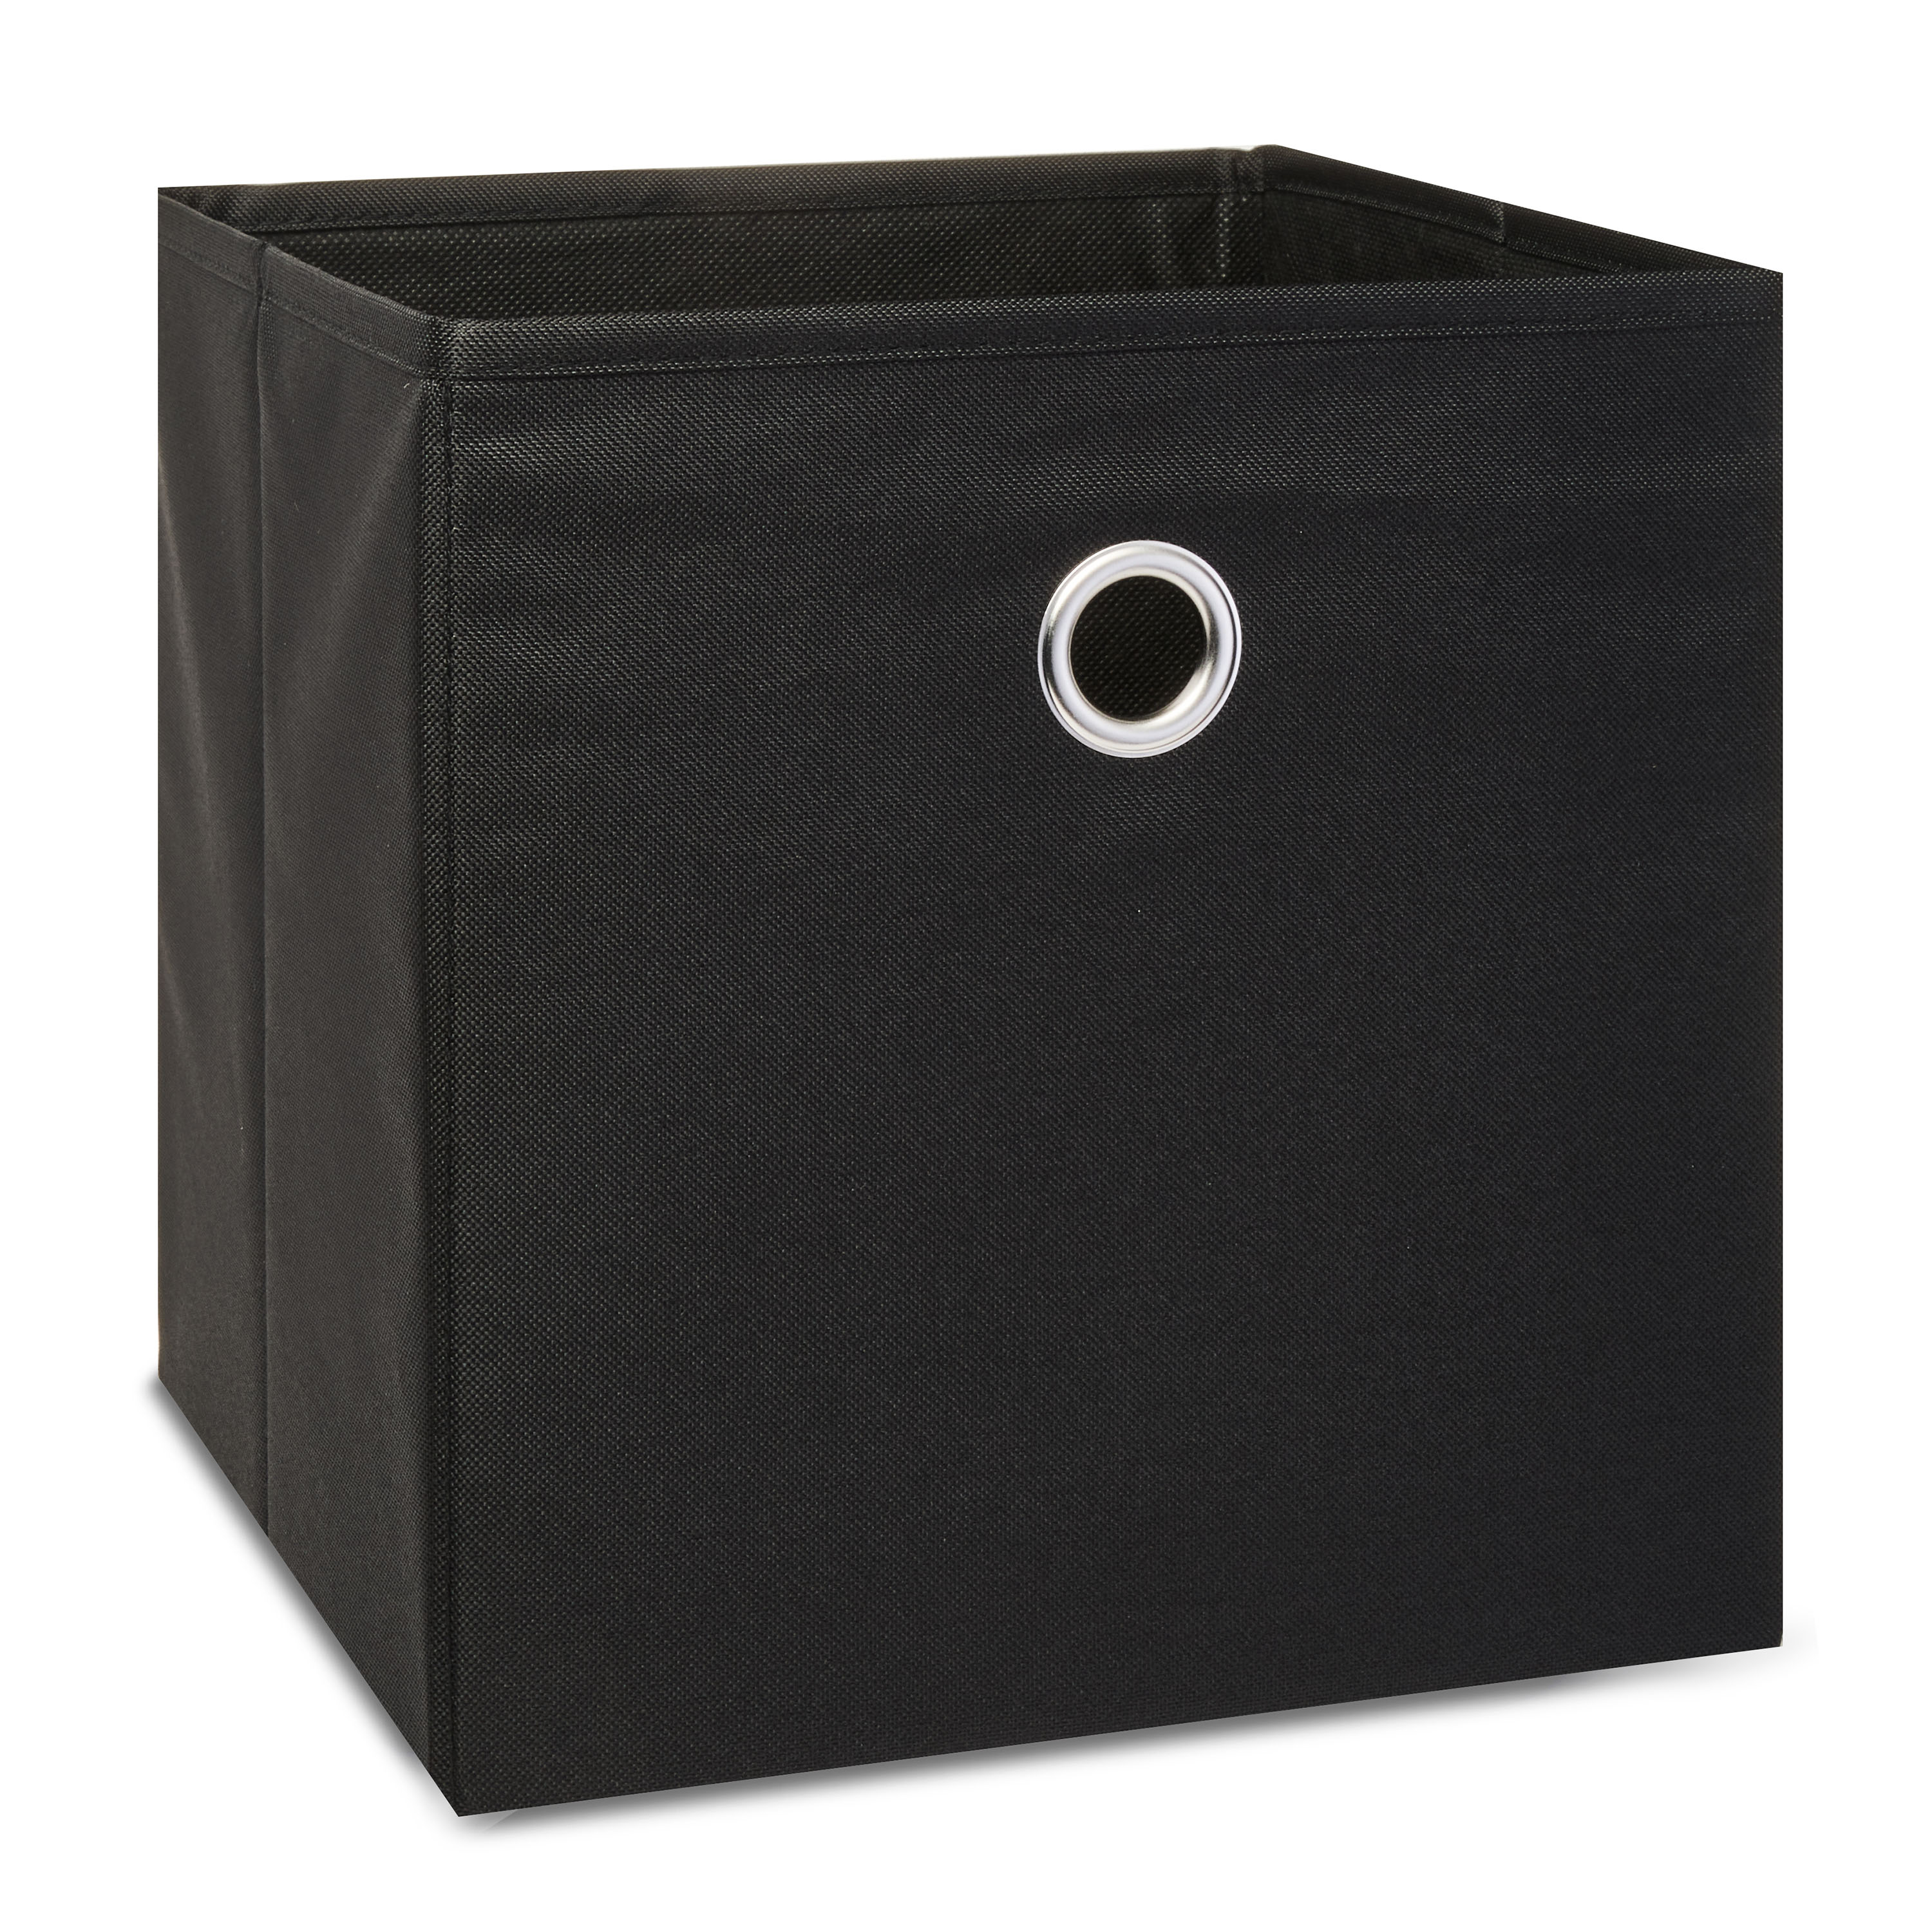 Mainstays Collapsible Fabric Cube Storage Bins (10.5